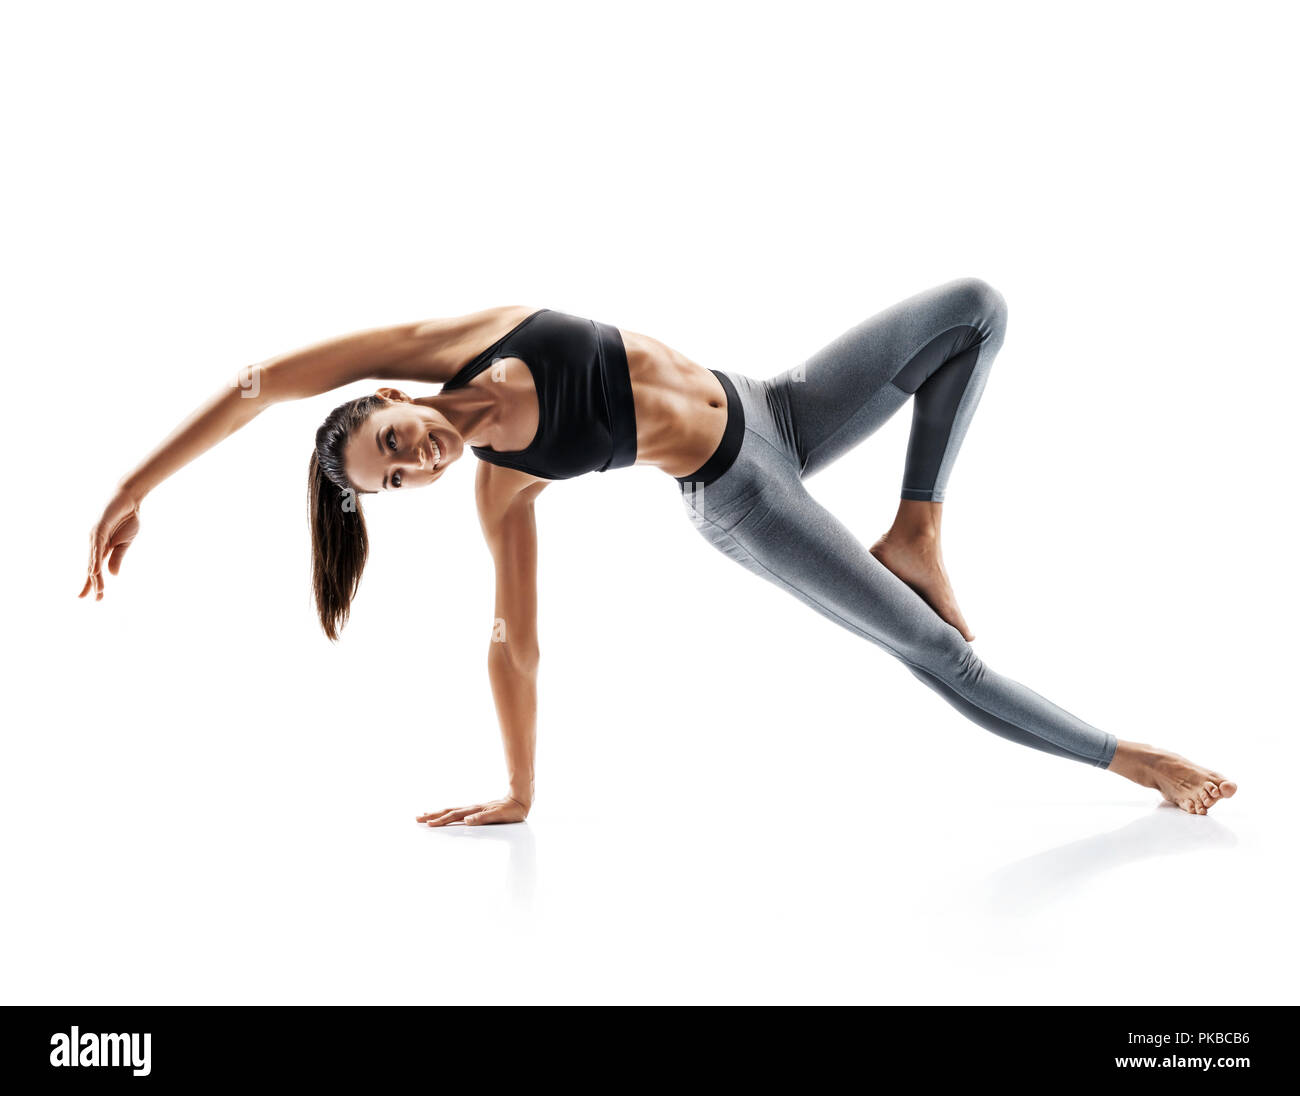 Young attractive girl practicing yoga isolated on white background. Concept of healthy life and natural balance between body and mental development. F - Stock Image